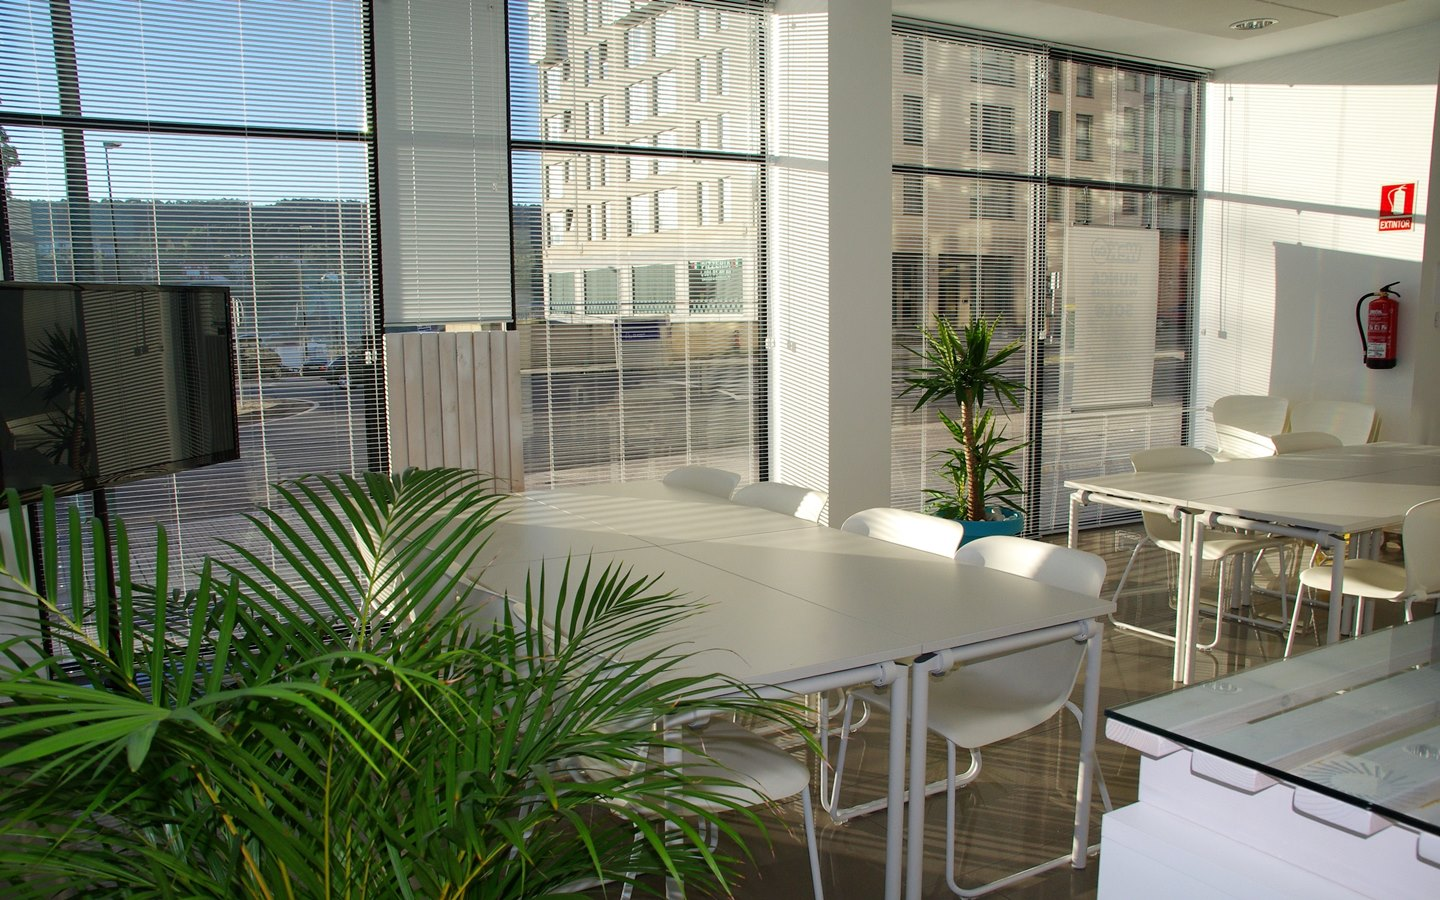 The benefits of office plants become noticeable as spend more and more time sorounded by them